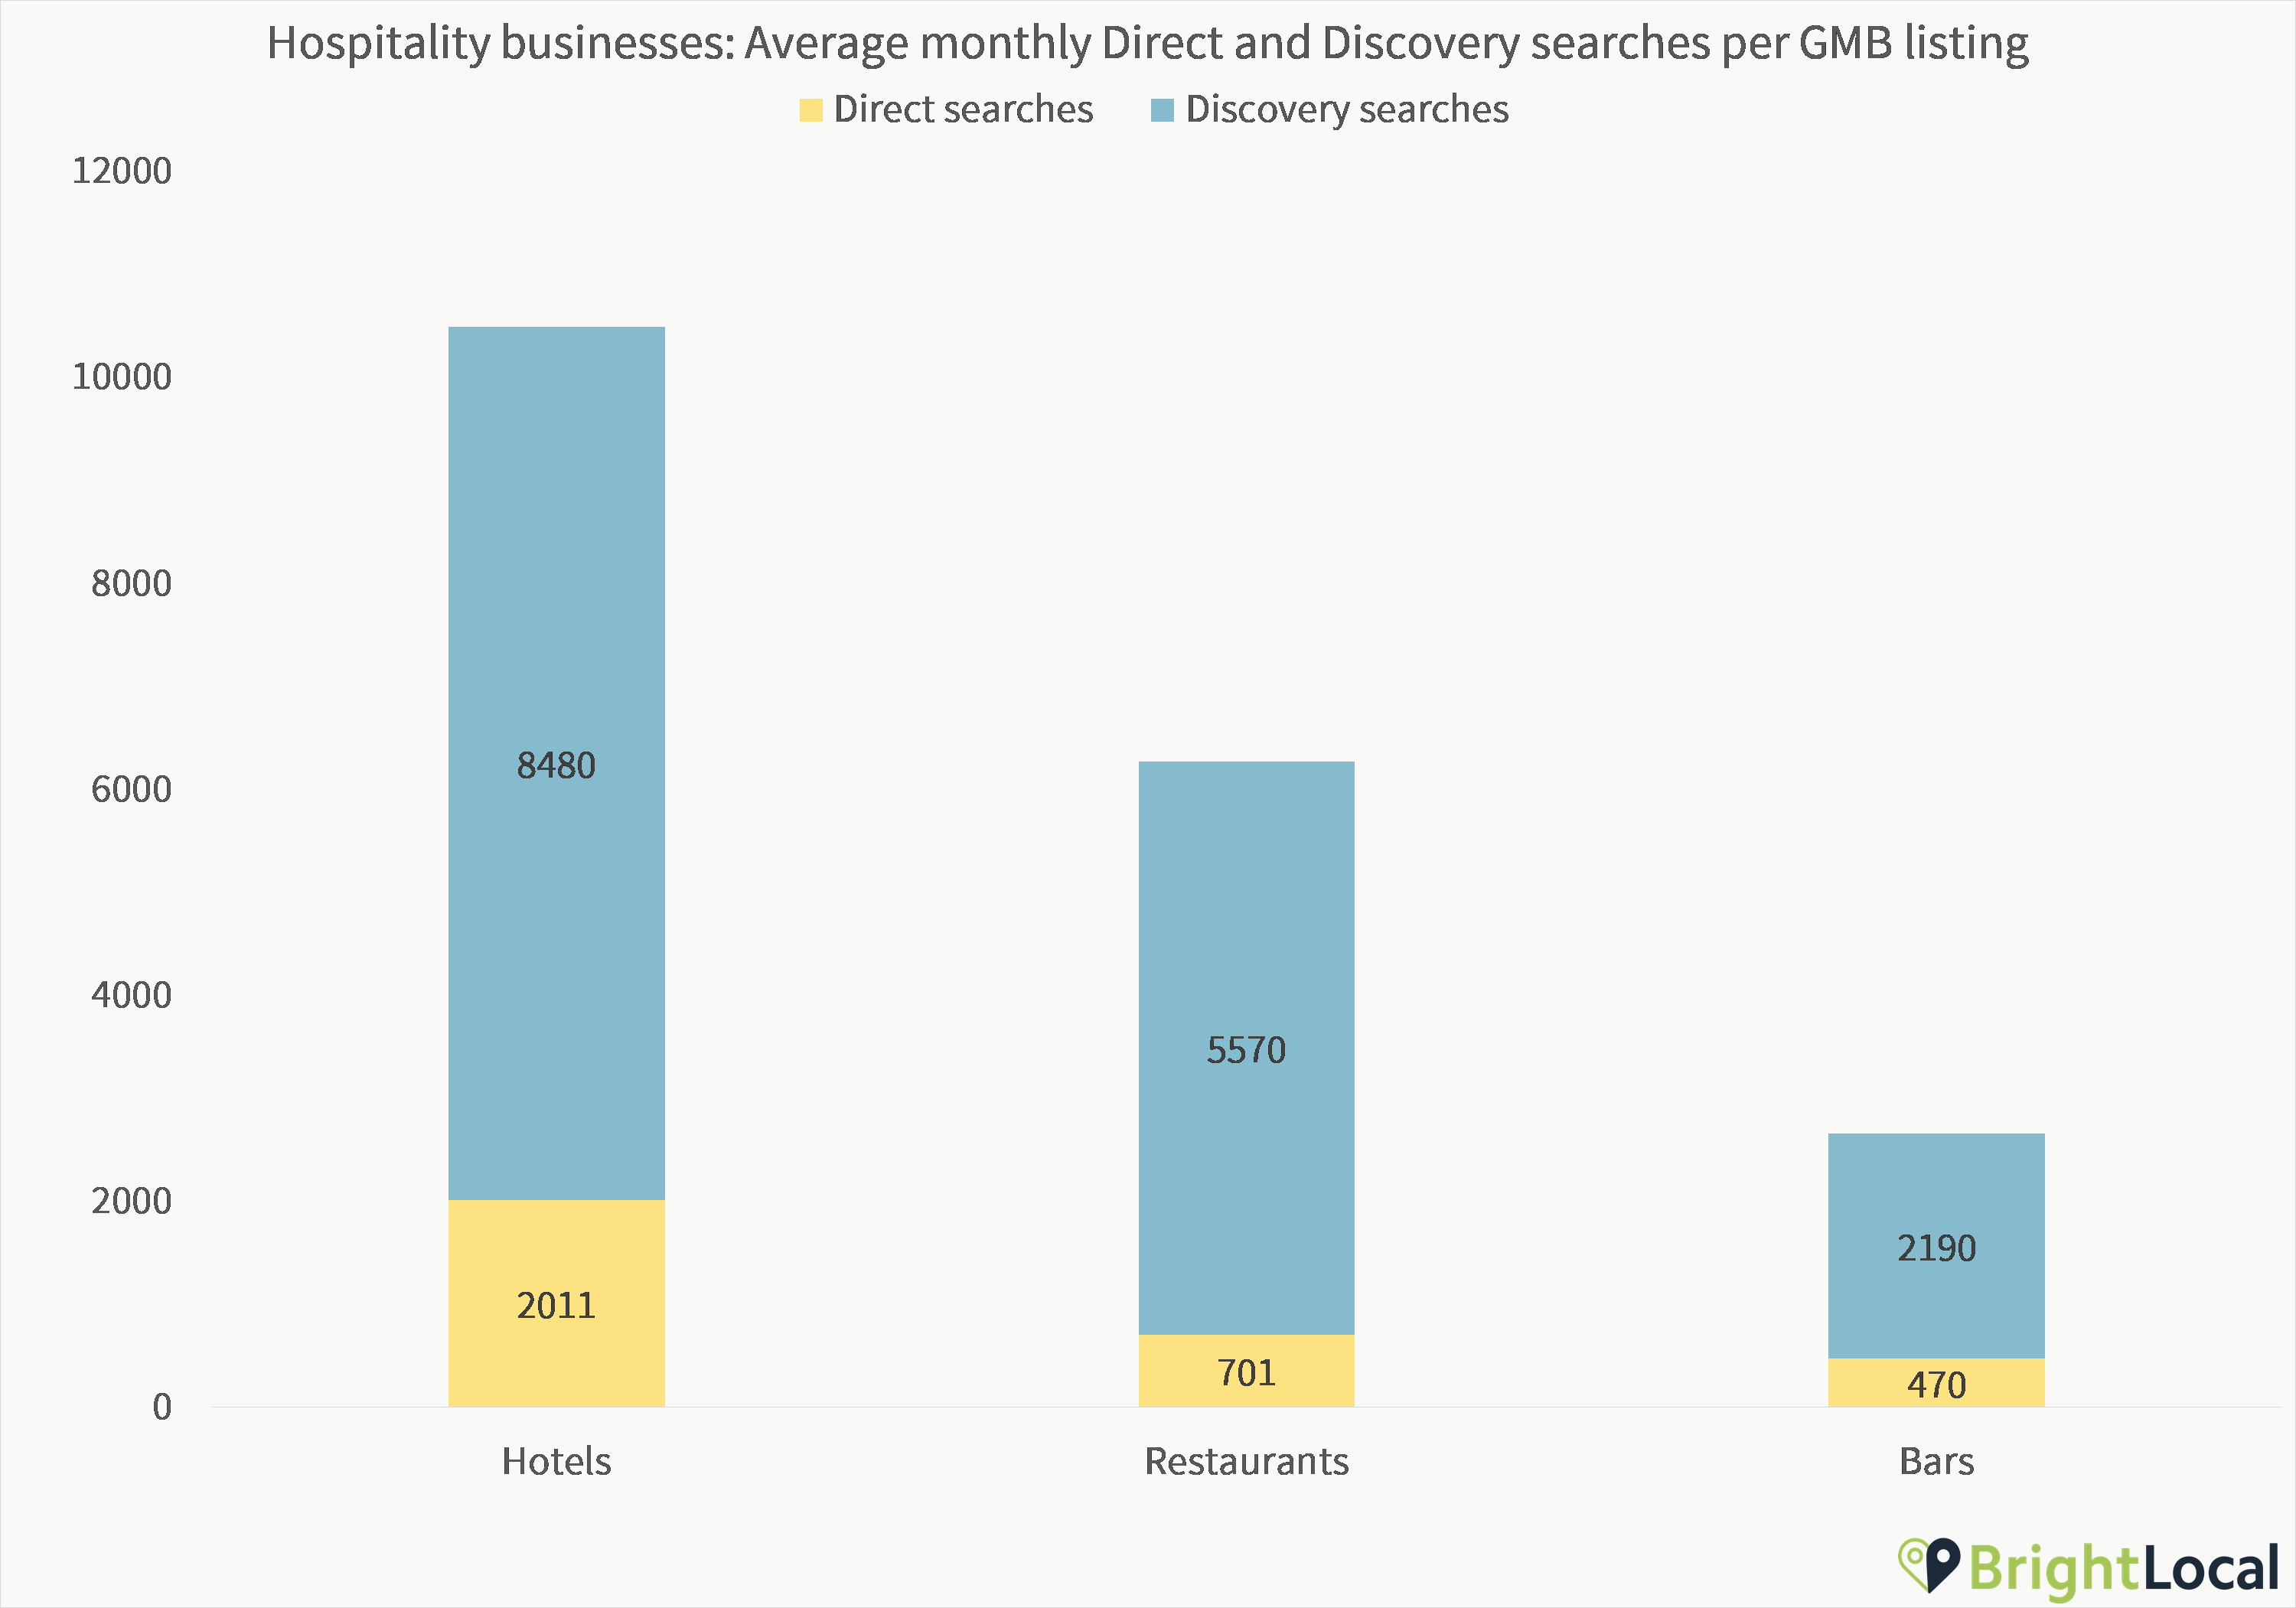 Hospitality Discovery and Direct Searches